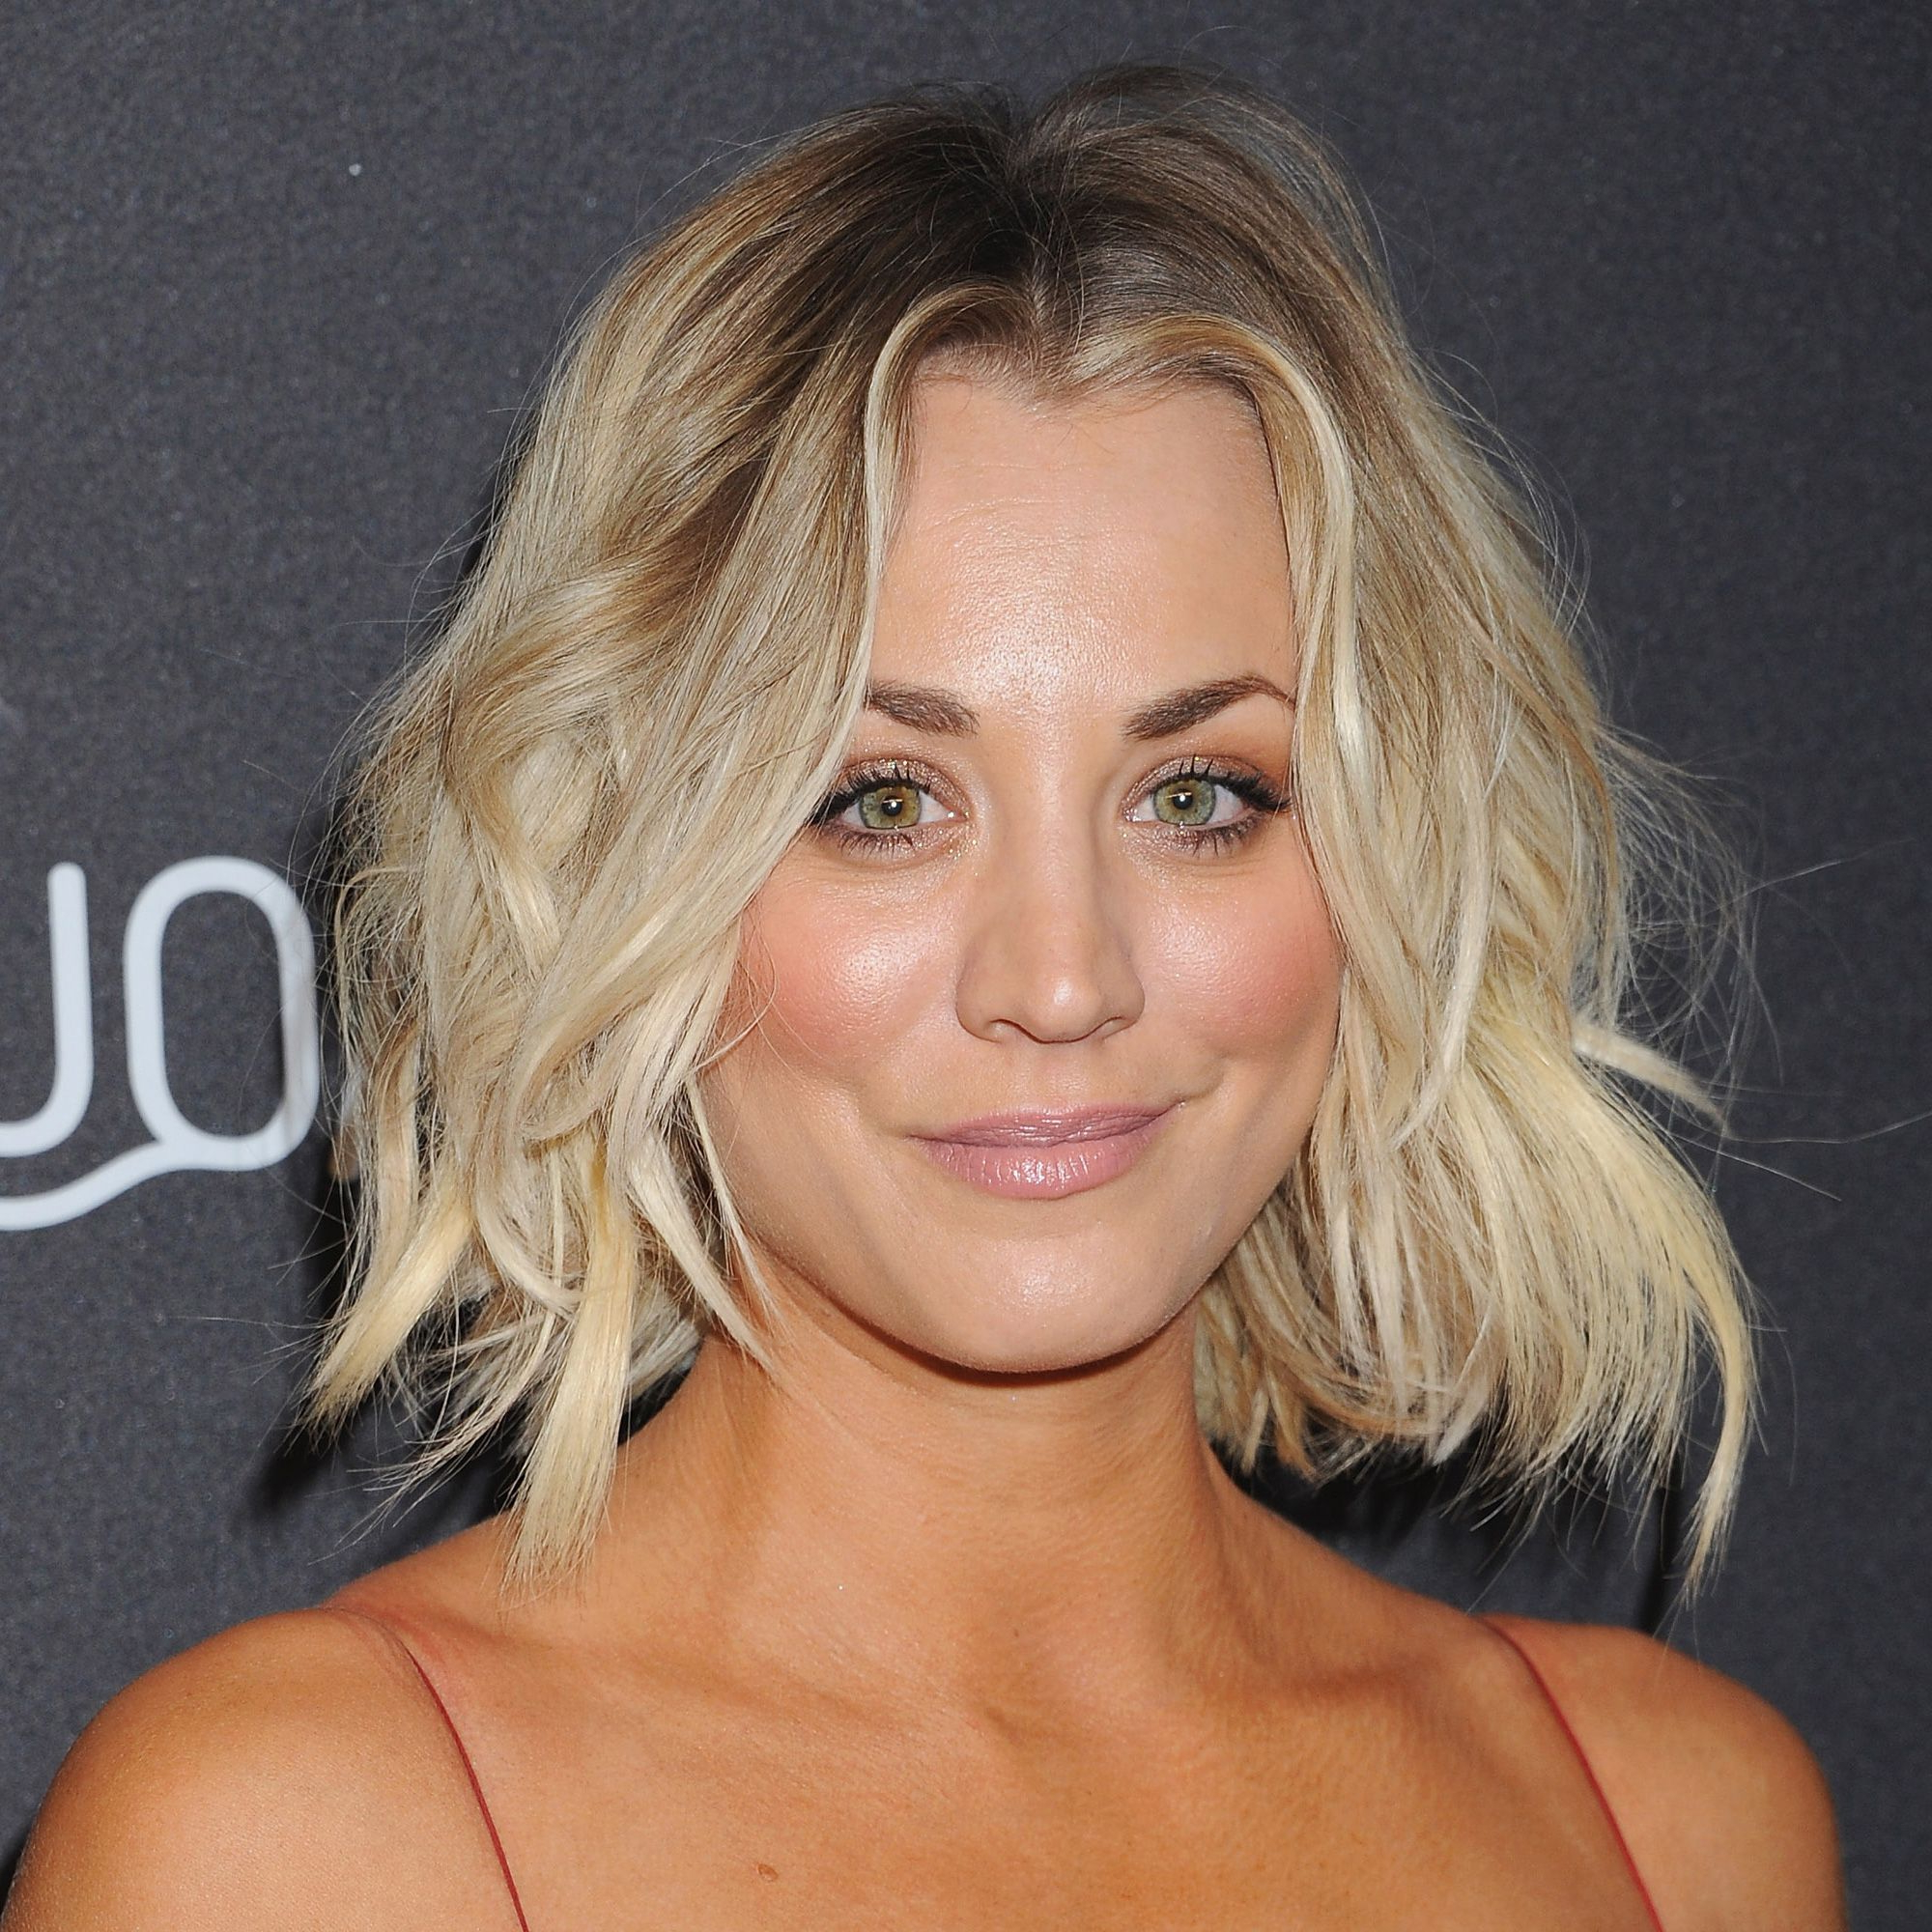 87 Cute Short Hairstyles & Haircuts – How To Style Short Hair Pertaining To Kaley Cuoco Short Hairstyles (Gallery 13 of 25)